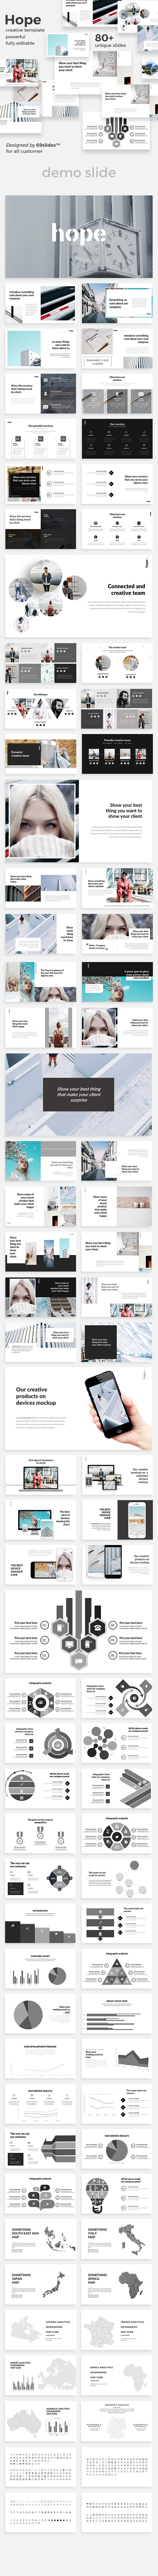 Hope Creative Powerpoint Template